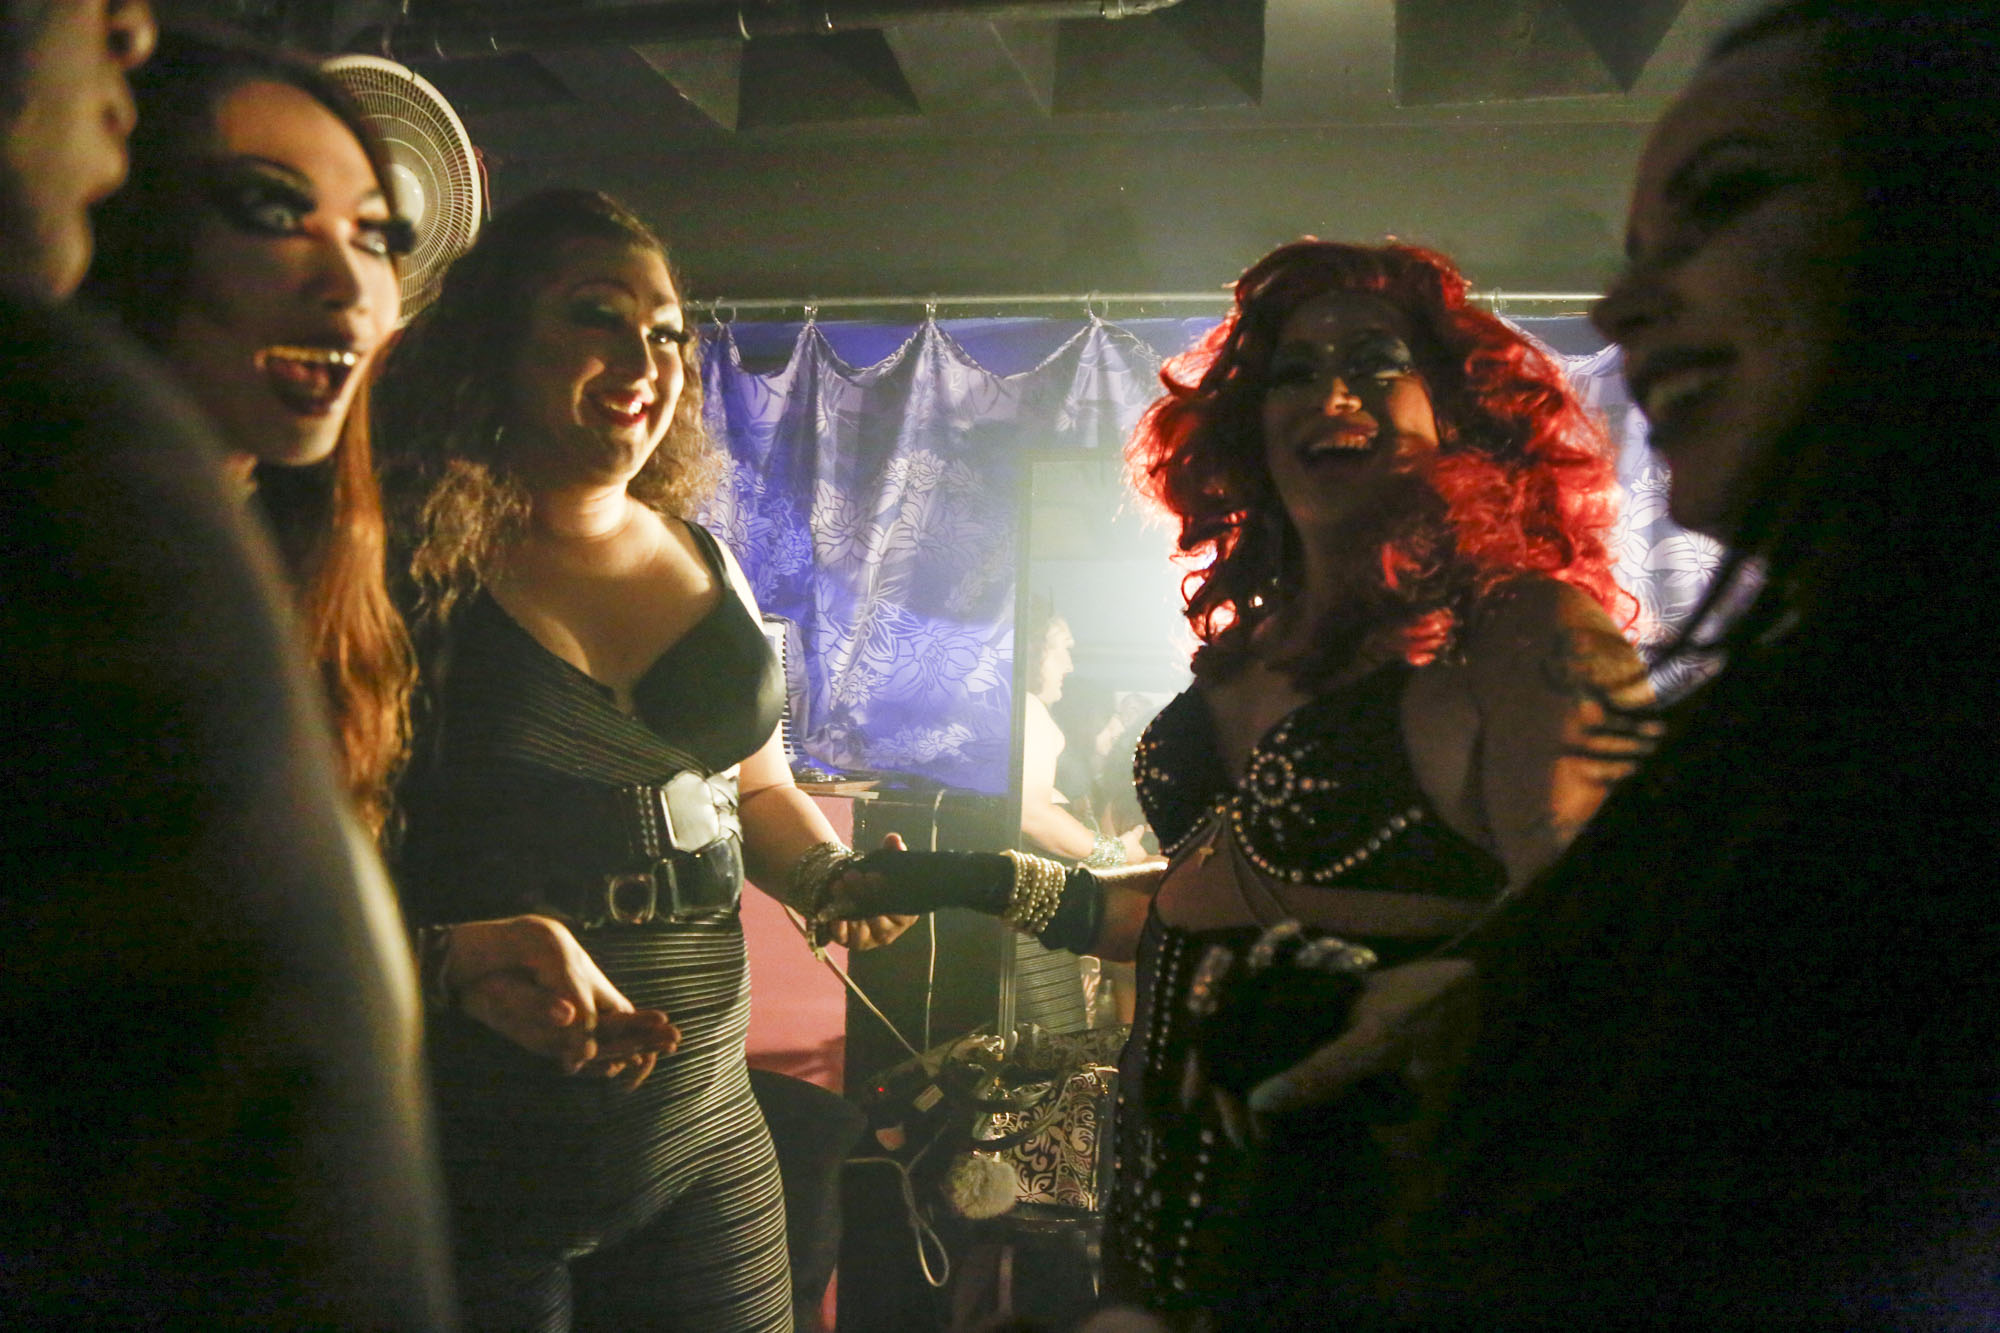 (From left to right) Zanaiyah Cage, Sarina Sena Daniels, Kalista Fox, Lilith Satana and Aria Del Rey hold hands and say words of encouragement to one another before the premiere performance for their group, Diamonds in the Muff. Satana, the leader of the group, says that he's never felt the sisterhood of drag until now. He's struggled to hold the respect of many queens since the beginning of his career and is now starting to get recognized for his talent.